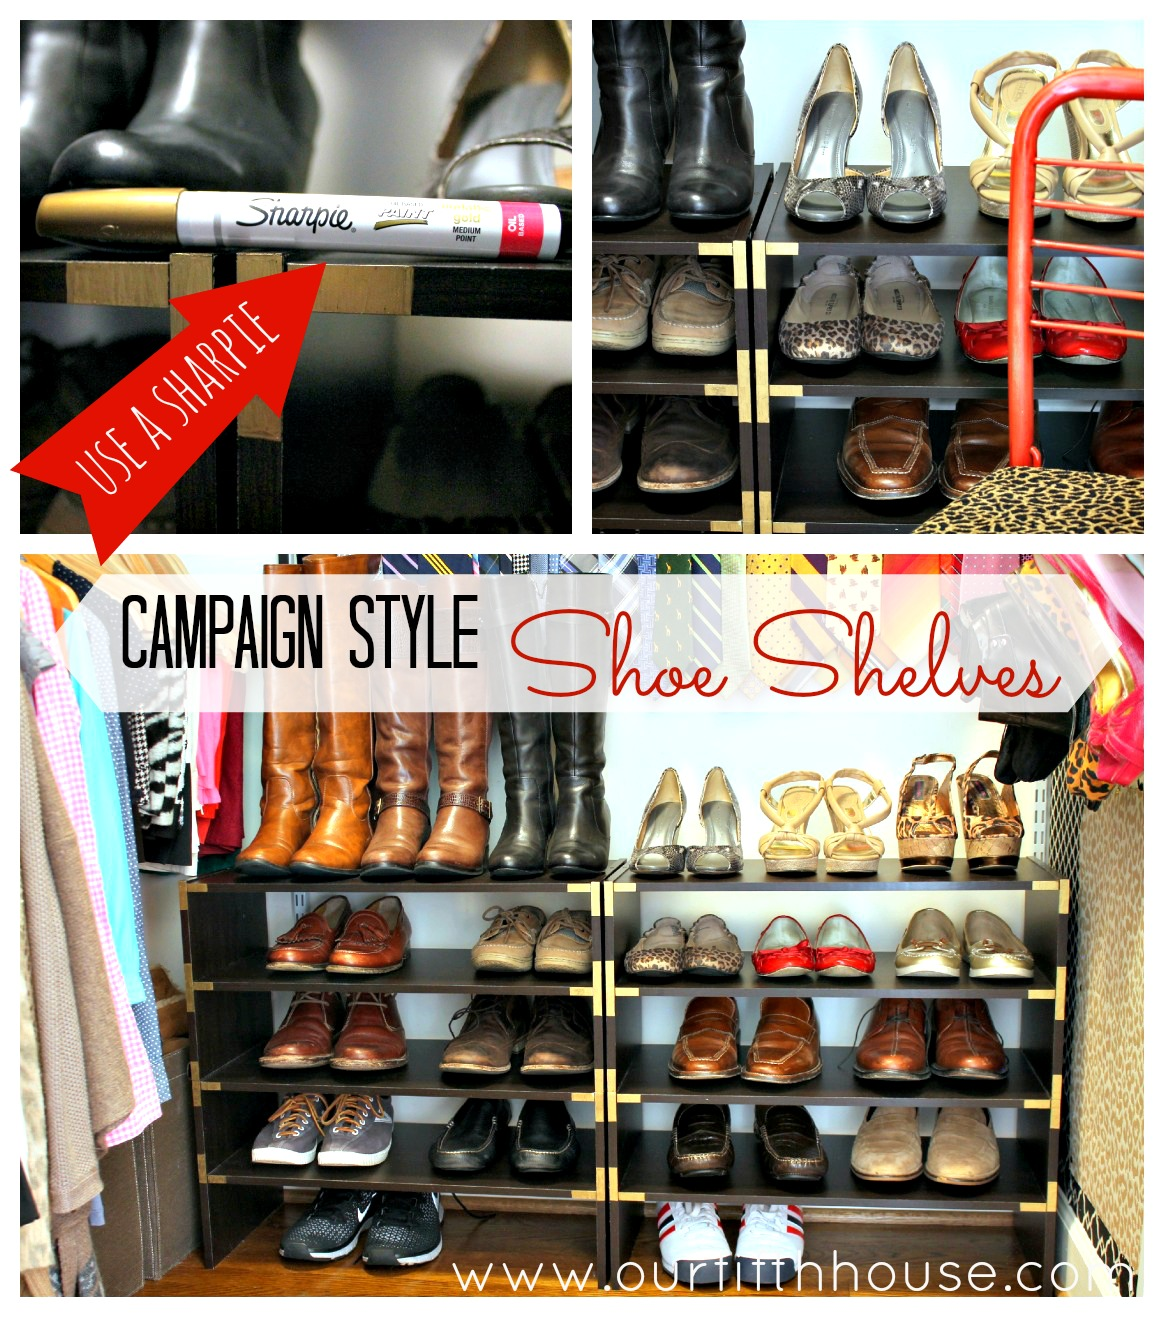 shoe rack campaign style shoe shelves campaign style shoe shelves